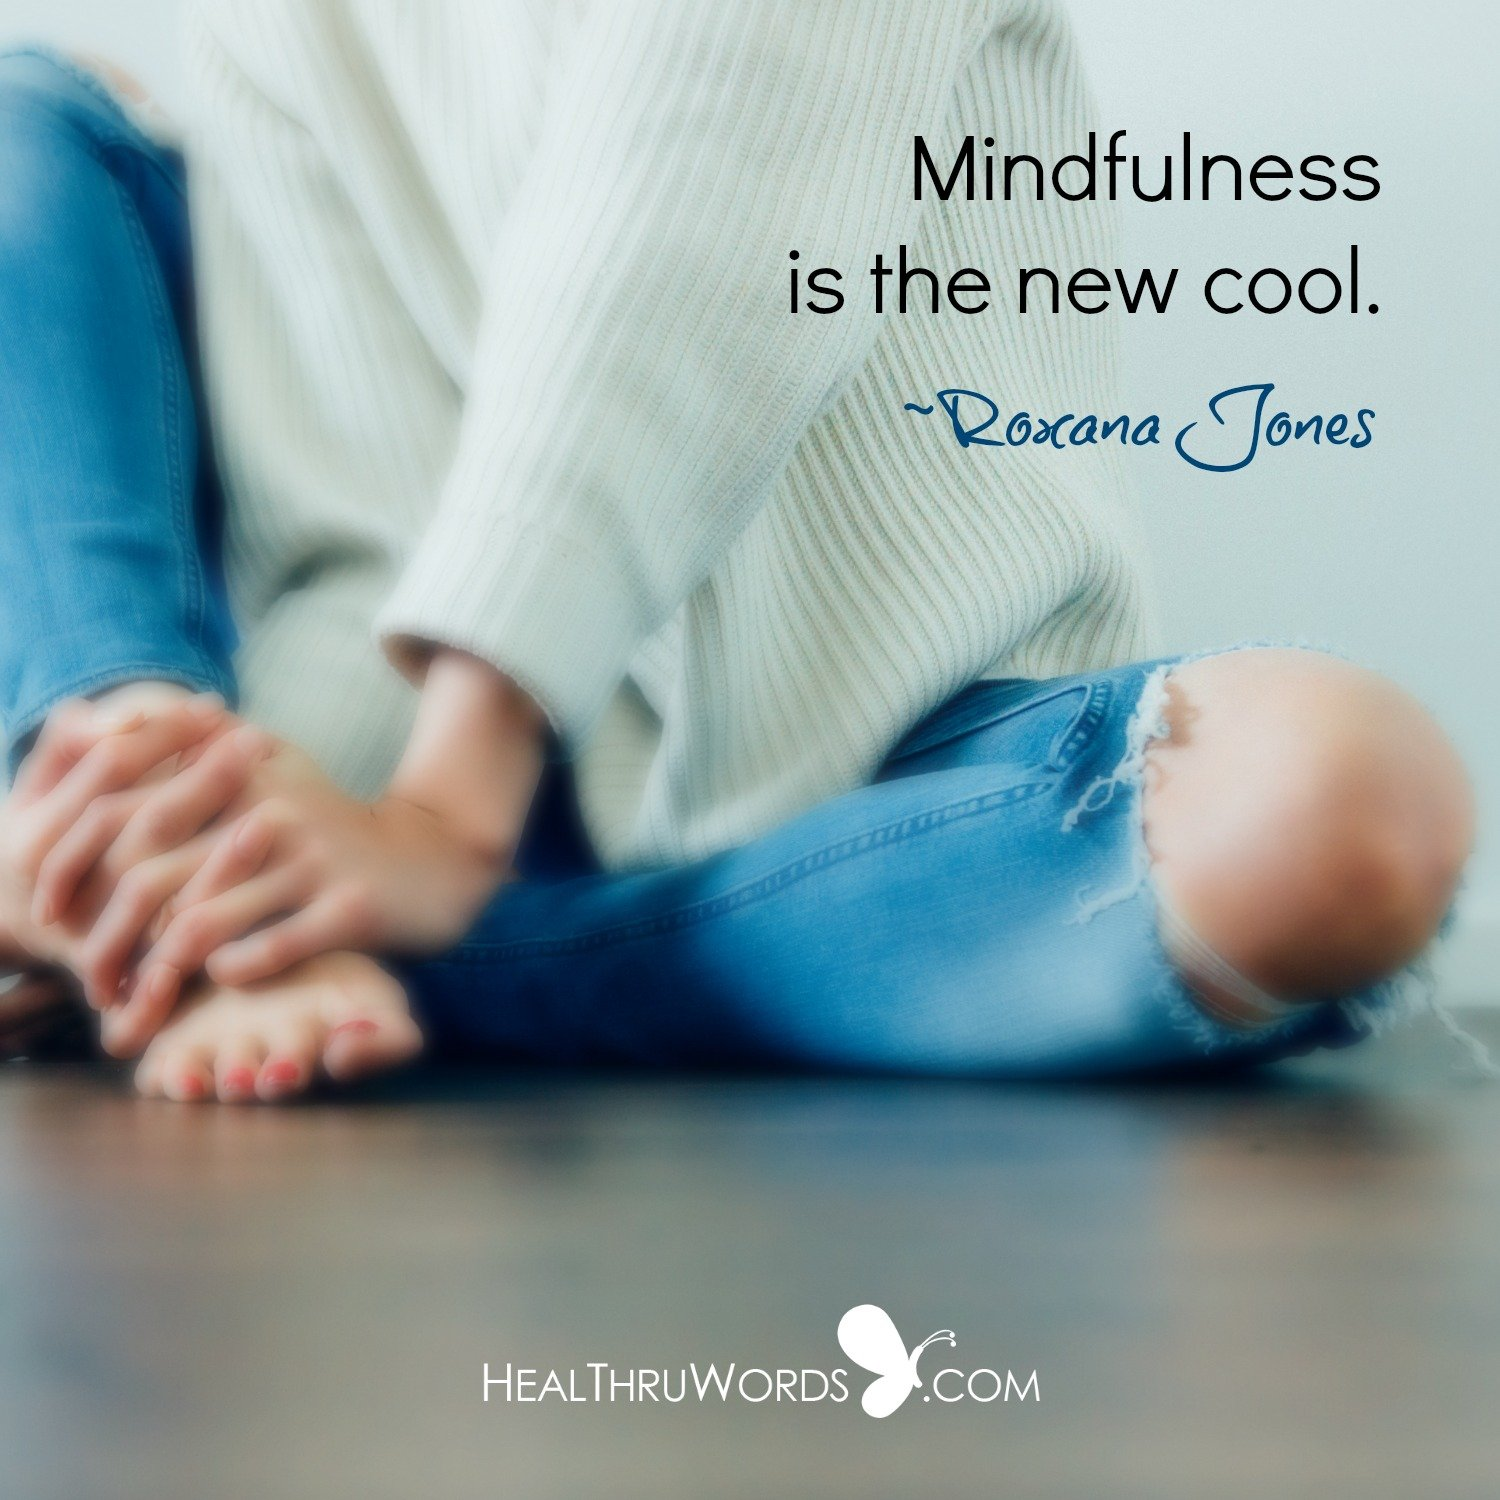 Inspirational Image: The New Cool